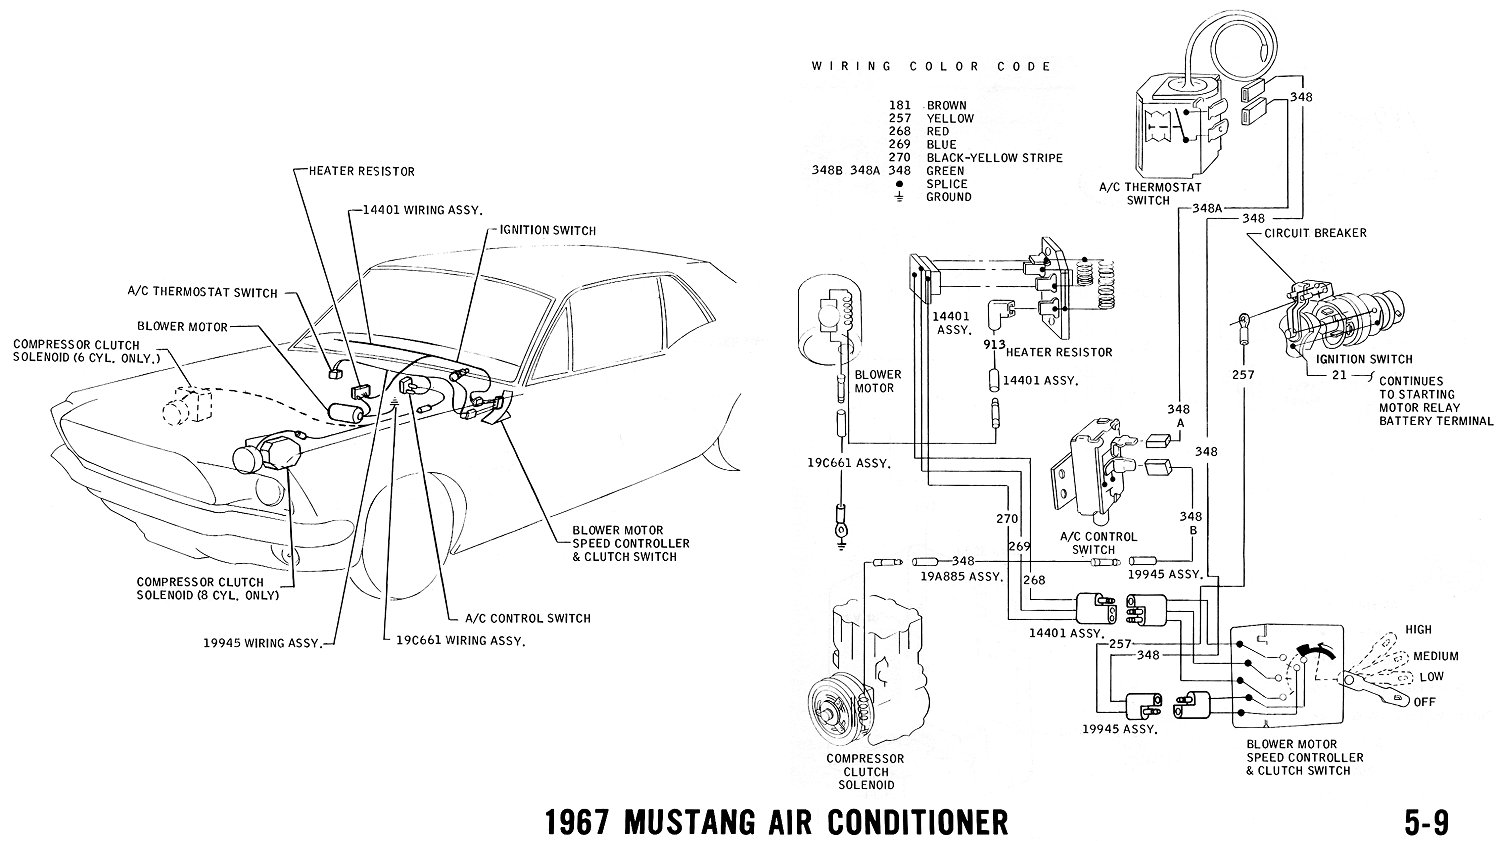 Help My Truck Shutoff Highway Fuel Solenoid 131847 likewise Simplicity Broadmoor Wiring Diagram likewise Item125781644 as well 1967 Mustang Wiring And Vacuum Diagrams besides 2000 F250 Fuel Pump Relay. on ford starter solenoid wiring schematic